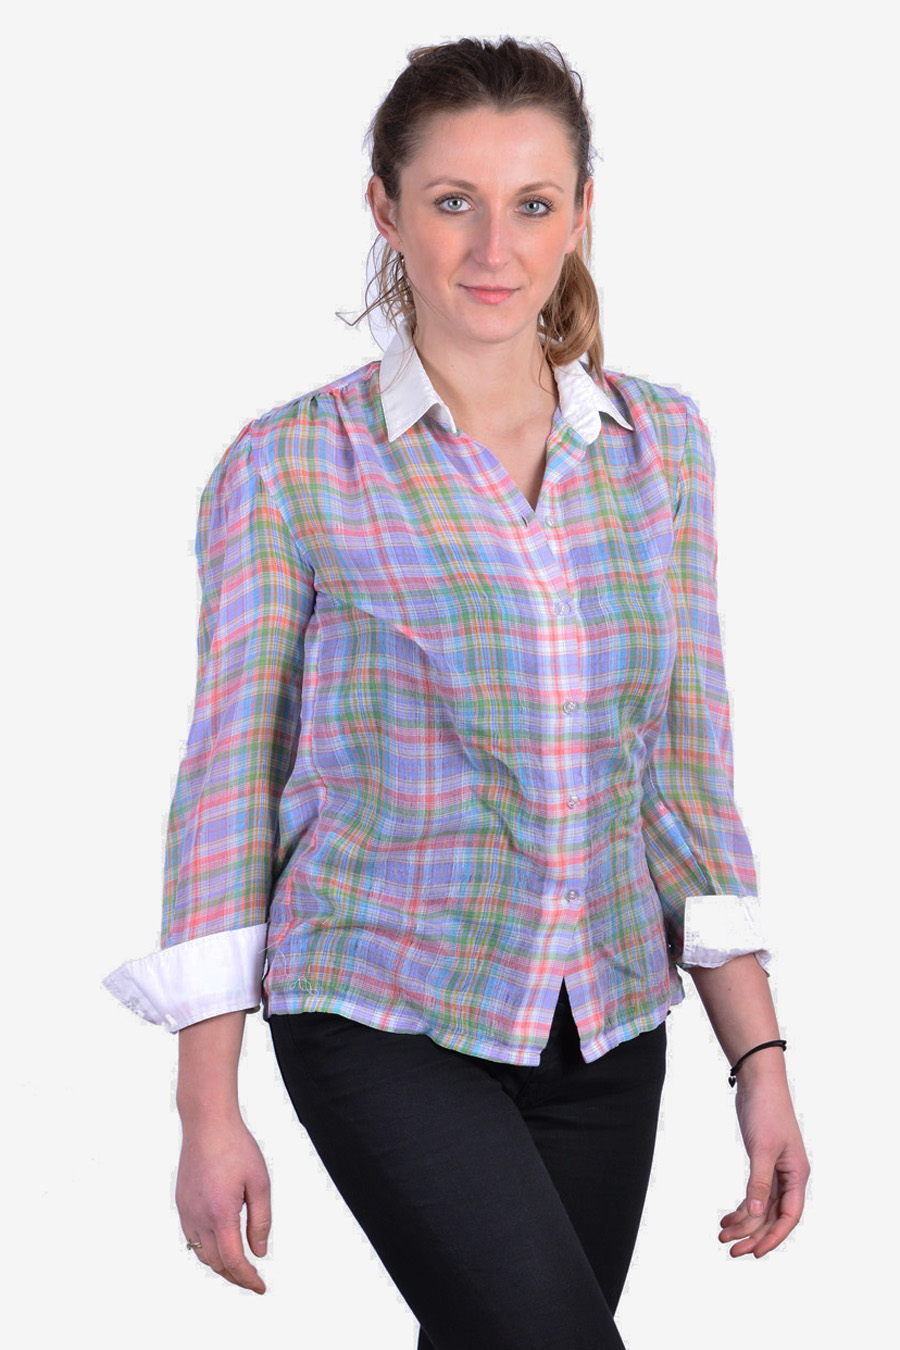 Vintage women's plaid shirt